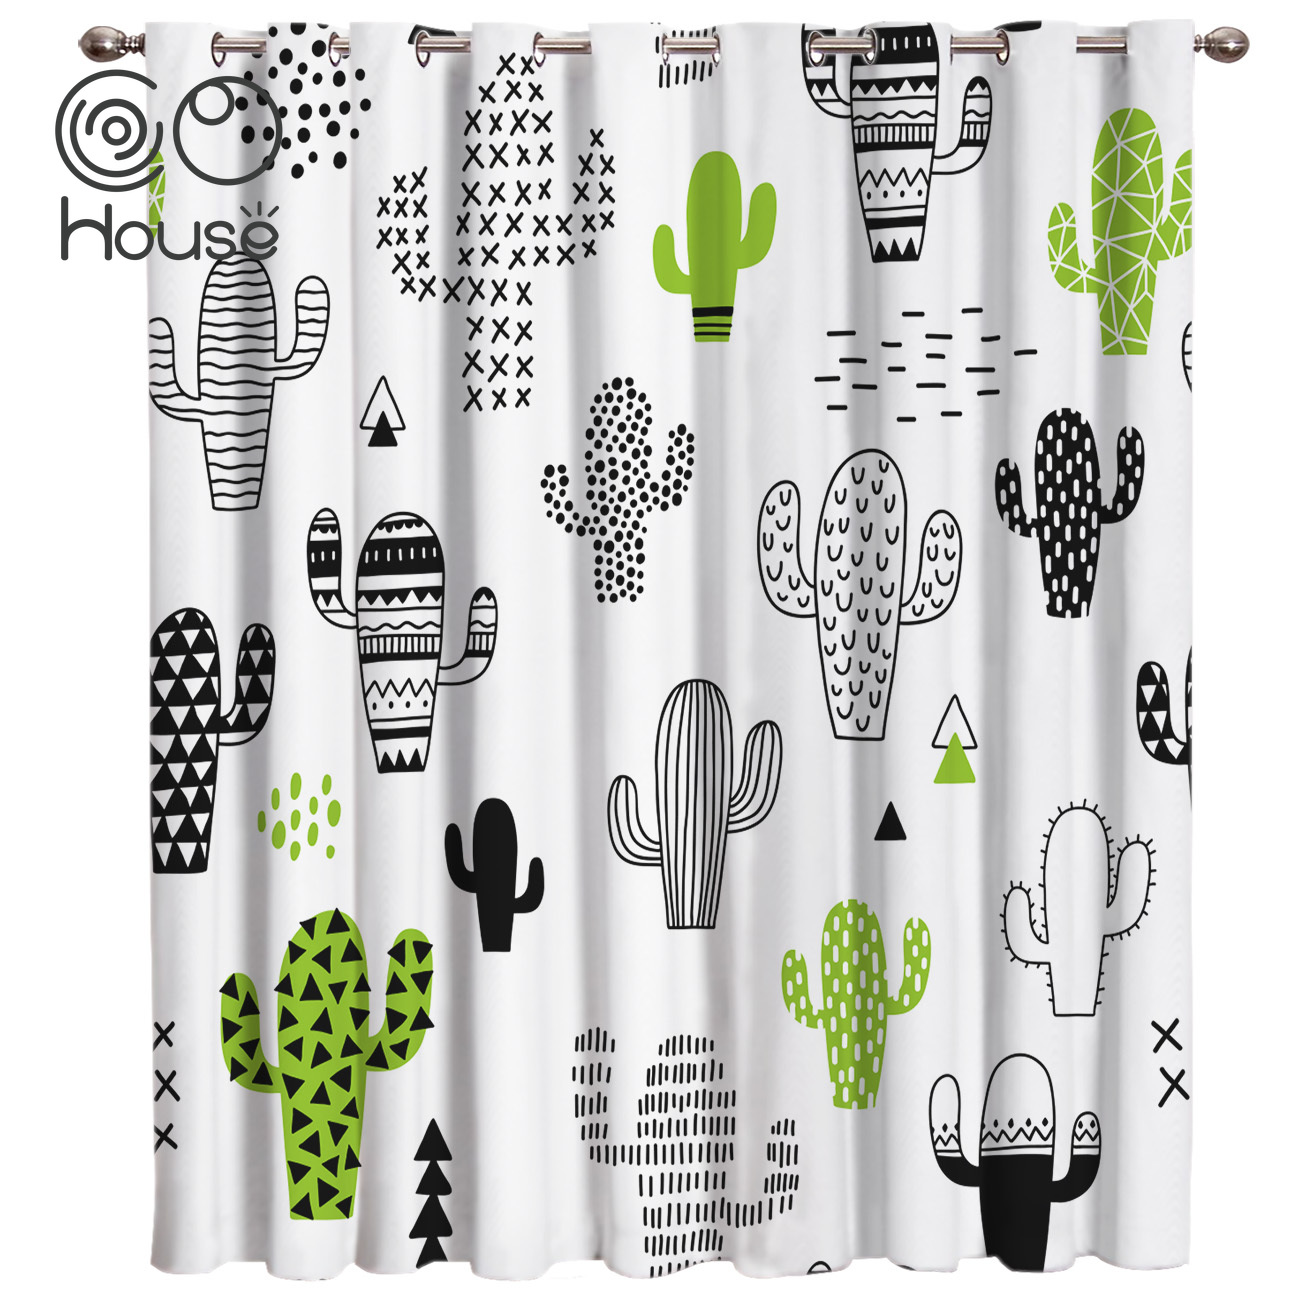 CoCoHouse Cute Graffiti Green Cactus Window Treatments Curtains Valance Window Blinds Kitchen Floral Drapes Decor